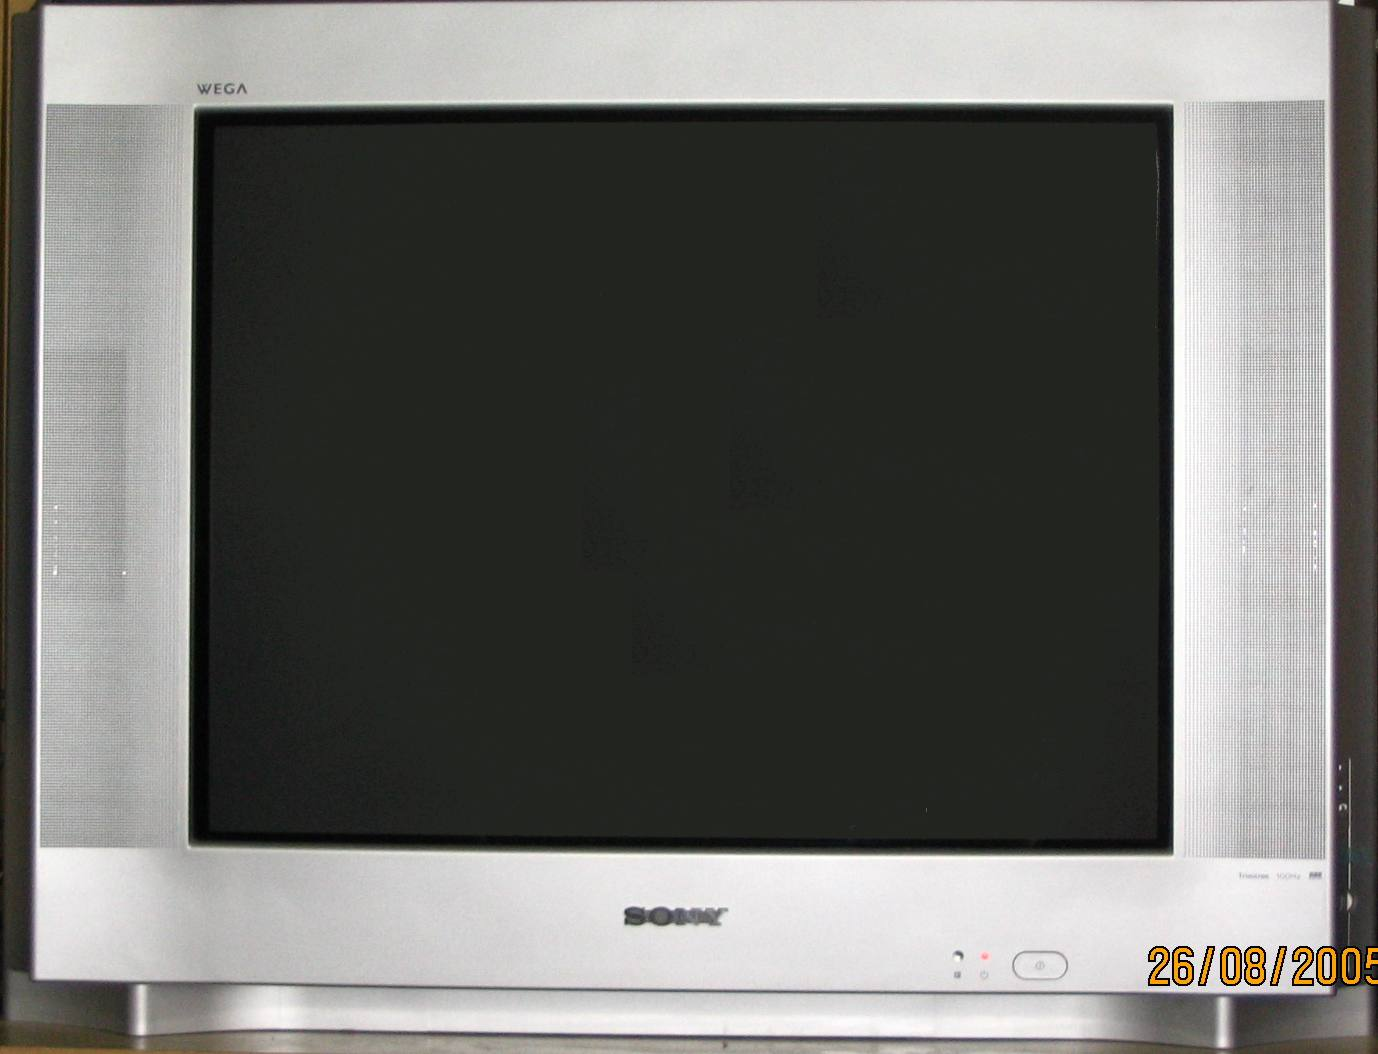 2005 Sony Wega TV http://commons.wikimedia.org/wiki/File:Sony_Wega_TV_set.jpg